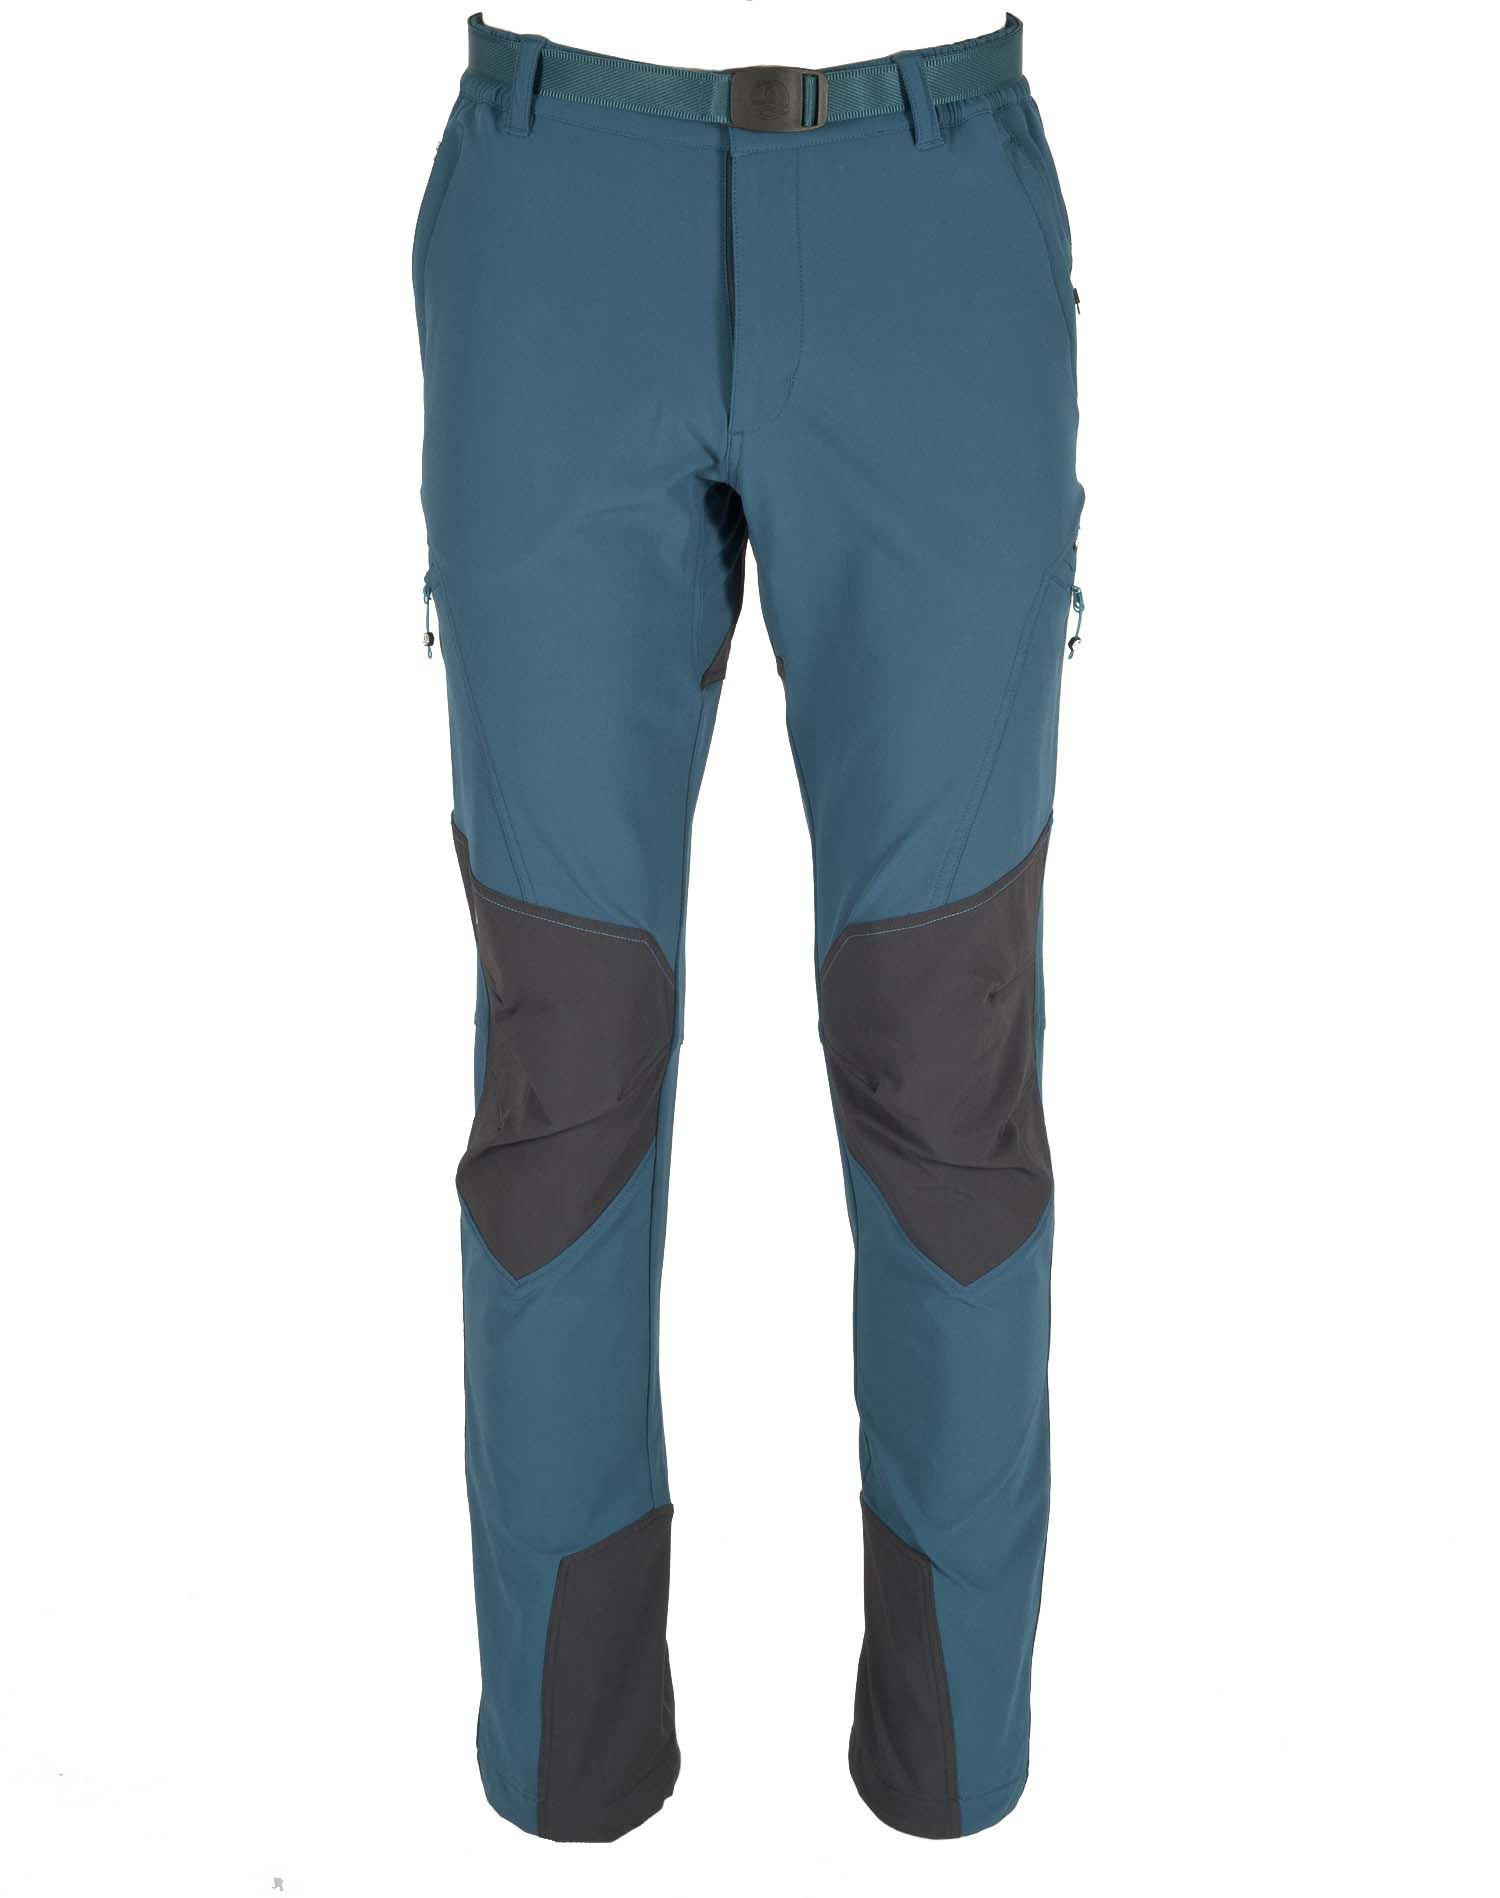 Ternua Withorn Pant f-whales grey